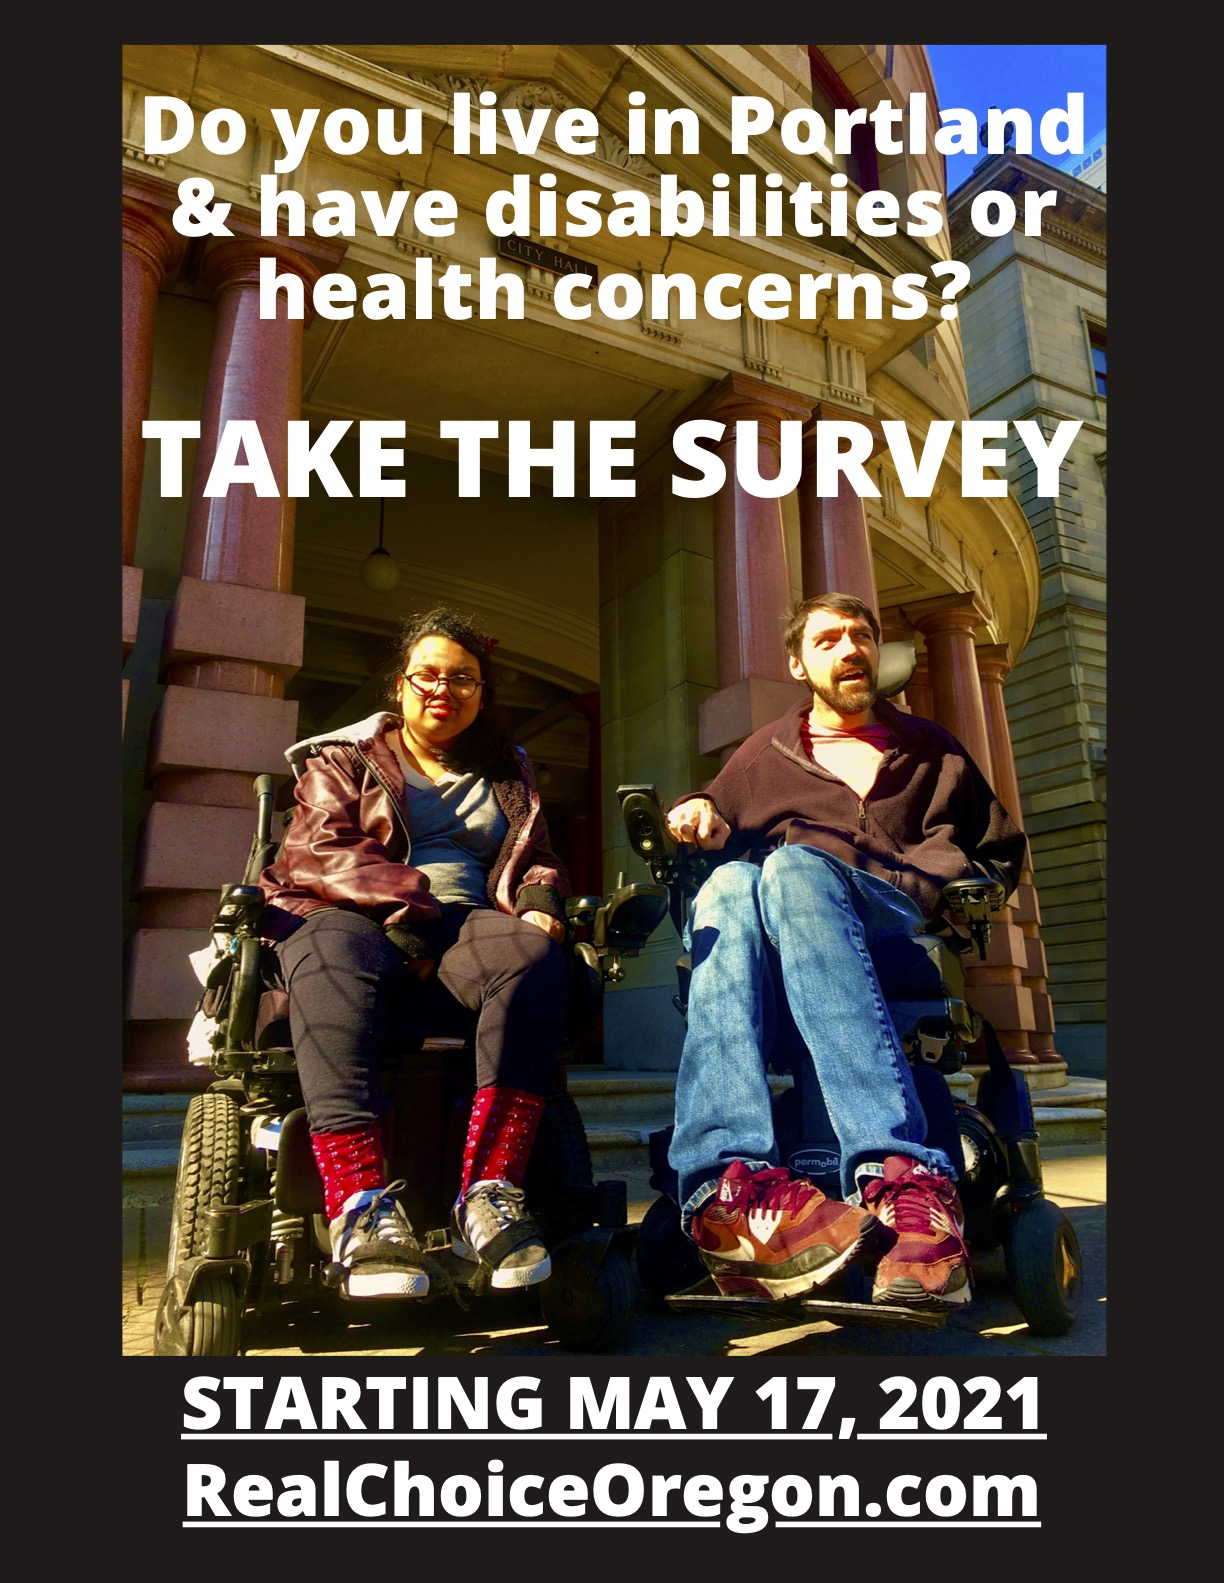 "The text ""Do you live in Portland & have disabilities or health concerns? TAKE THE SURVEY STARTING MAY 17, 2021 RealChoiceOregon.com"" is overlaid throughout this image of two people with disabilities sitting in their power wheelchairs in front of Portland City Hall. One person is a brown Asian woman of color and the other is a nonbinary white person. They are both smiling and wearing warm clothes."